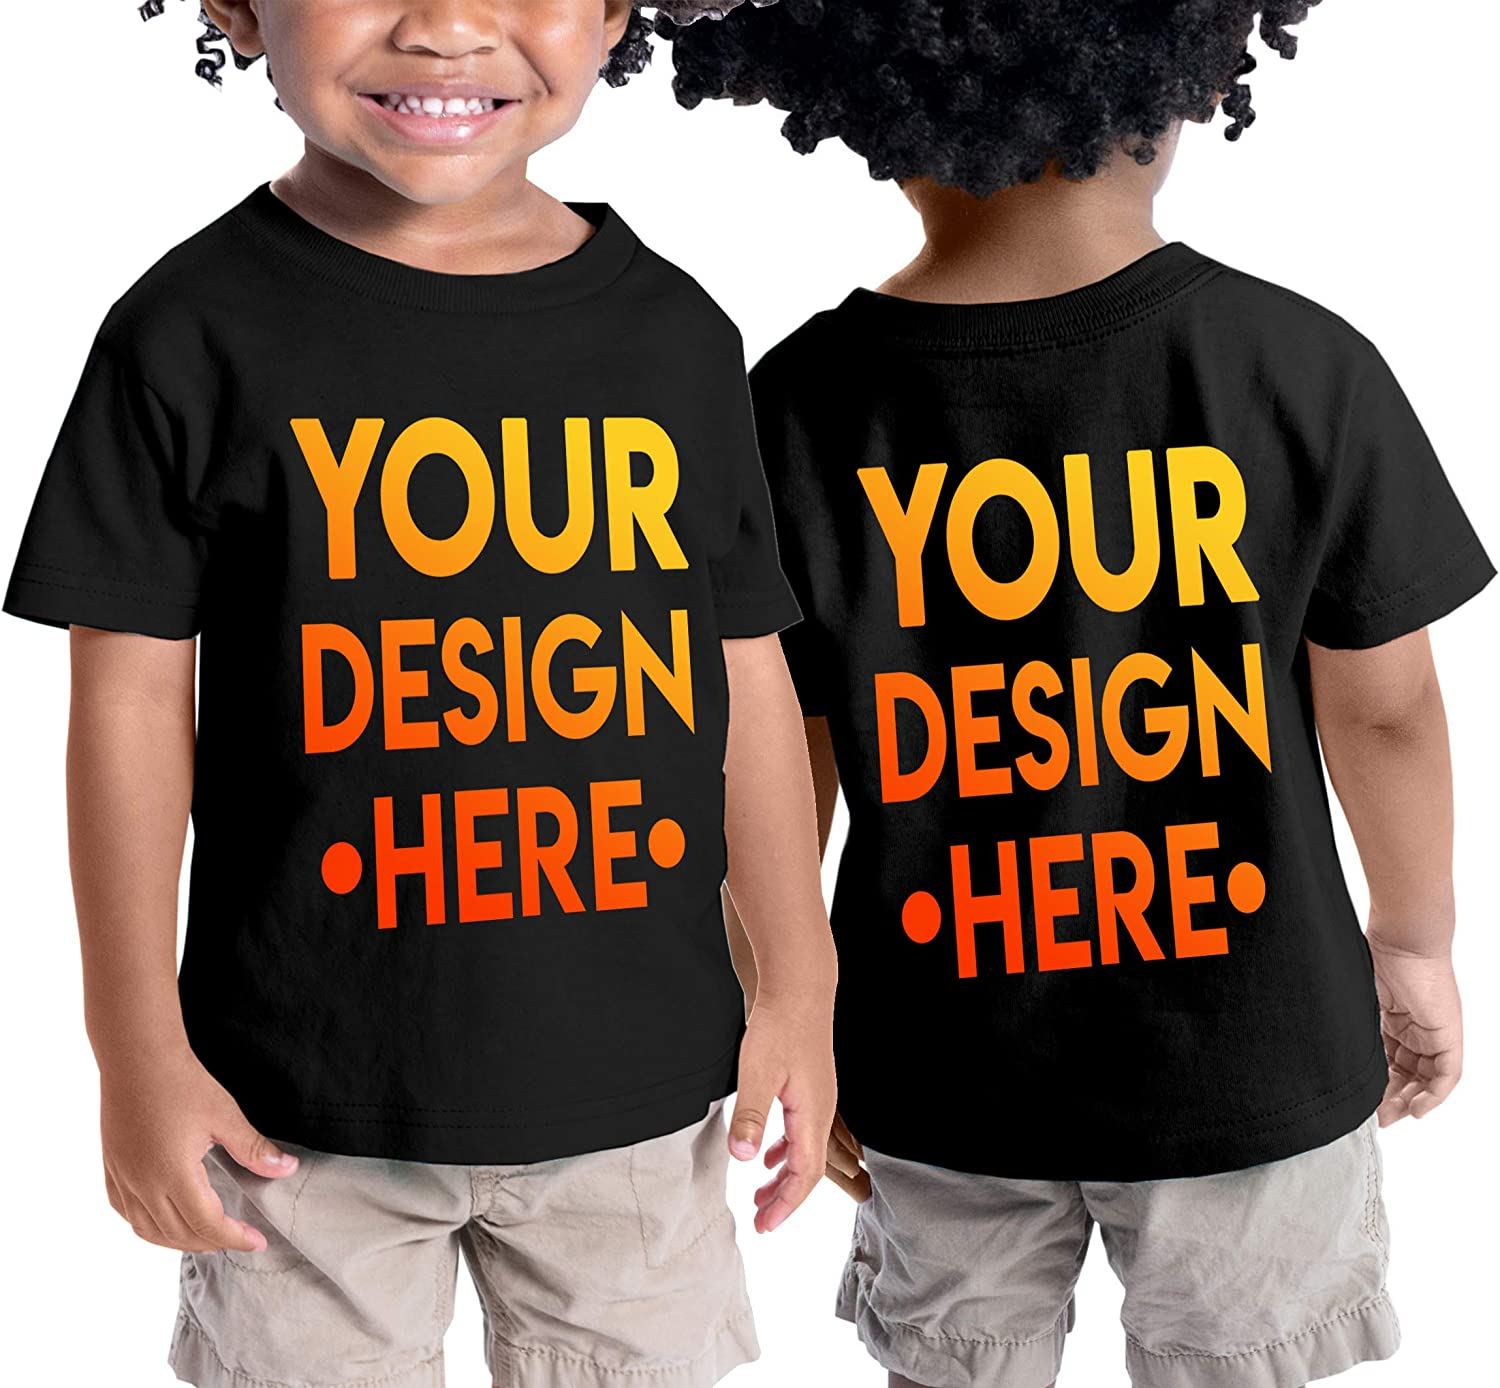 Your Image Here Personalized Tees Design Your Own Shirt Custom Tees Your Logo Here